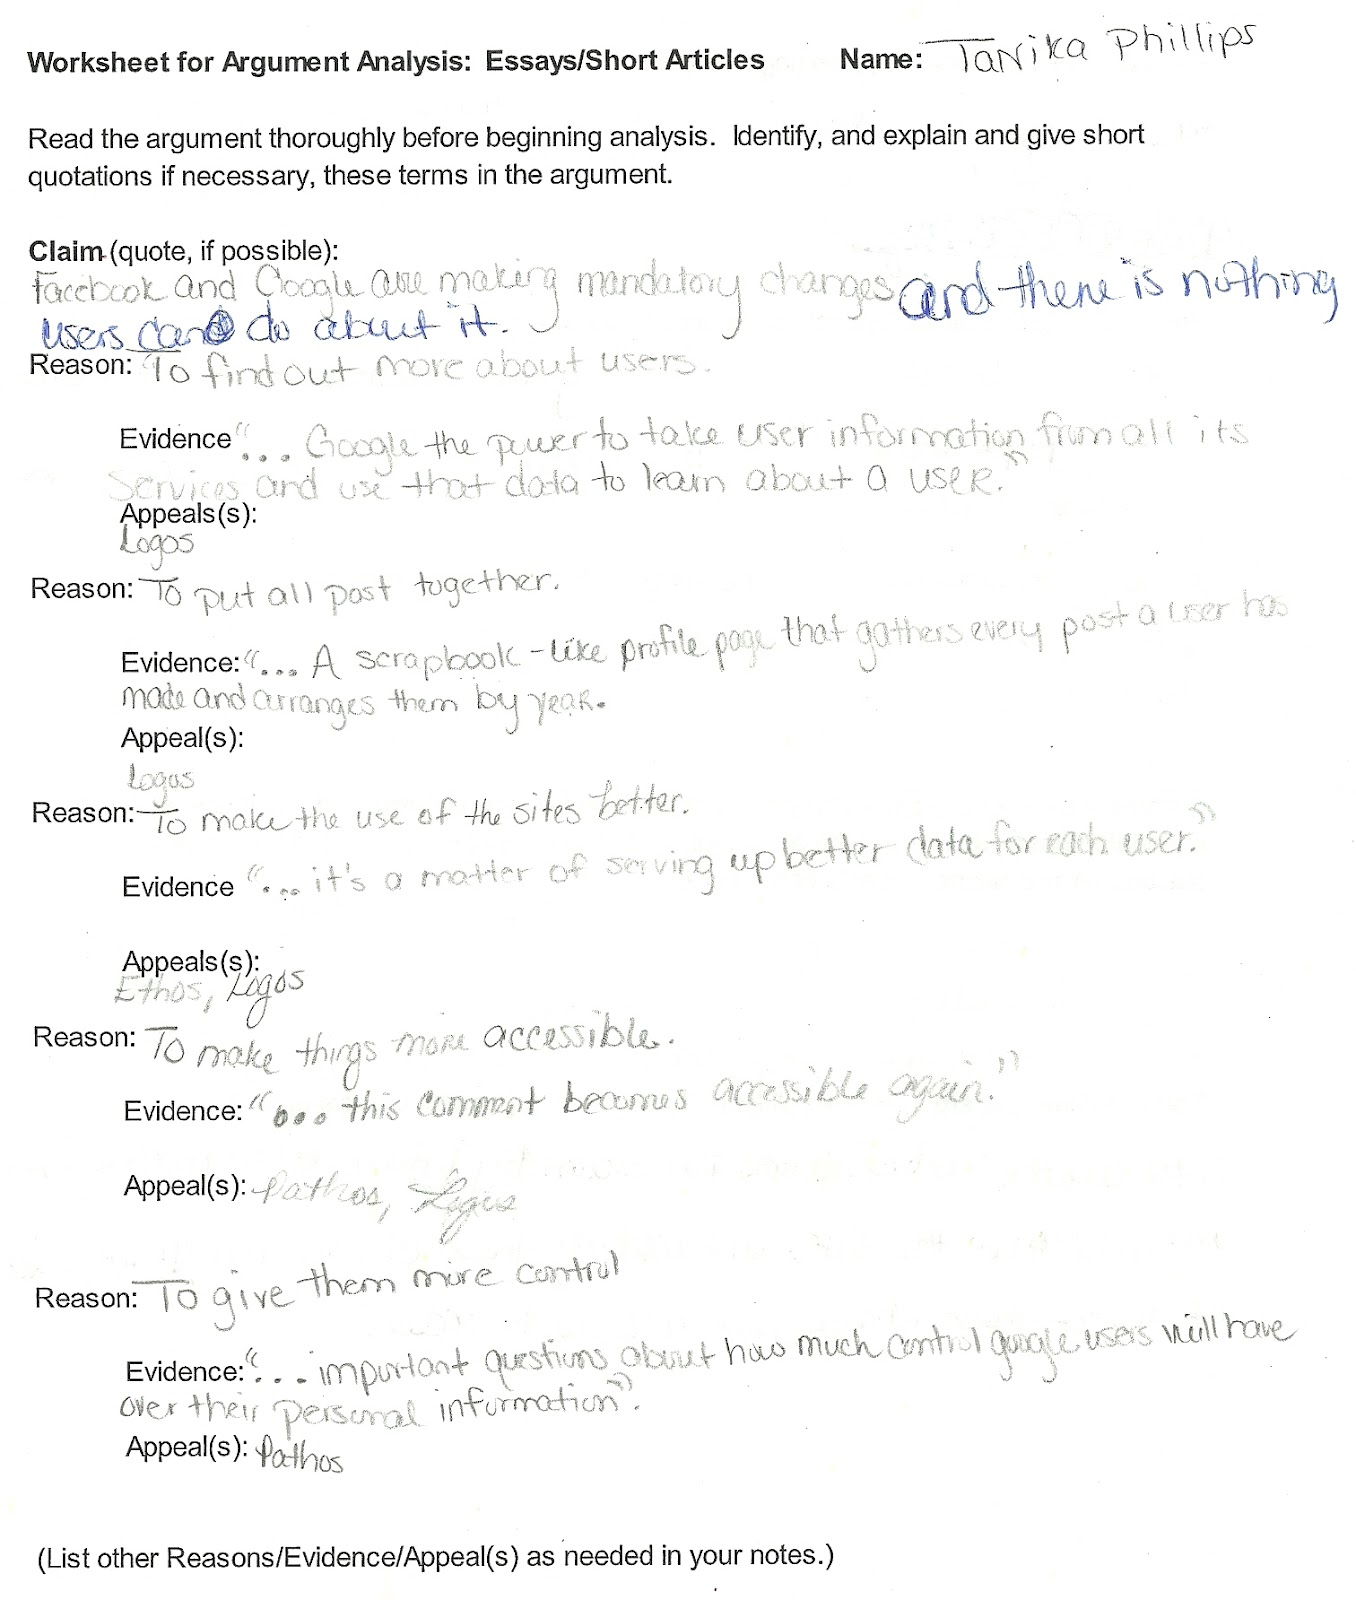 TANIKA ENG 112 BLOG Worksheet for Argument Analysis